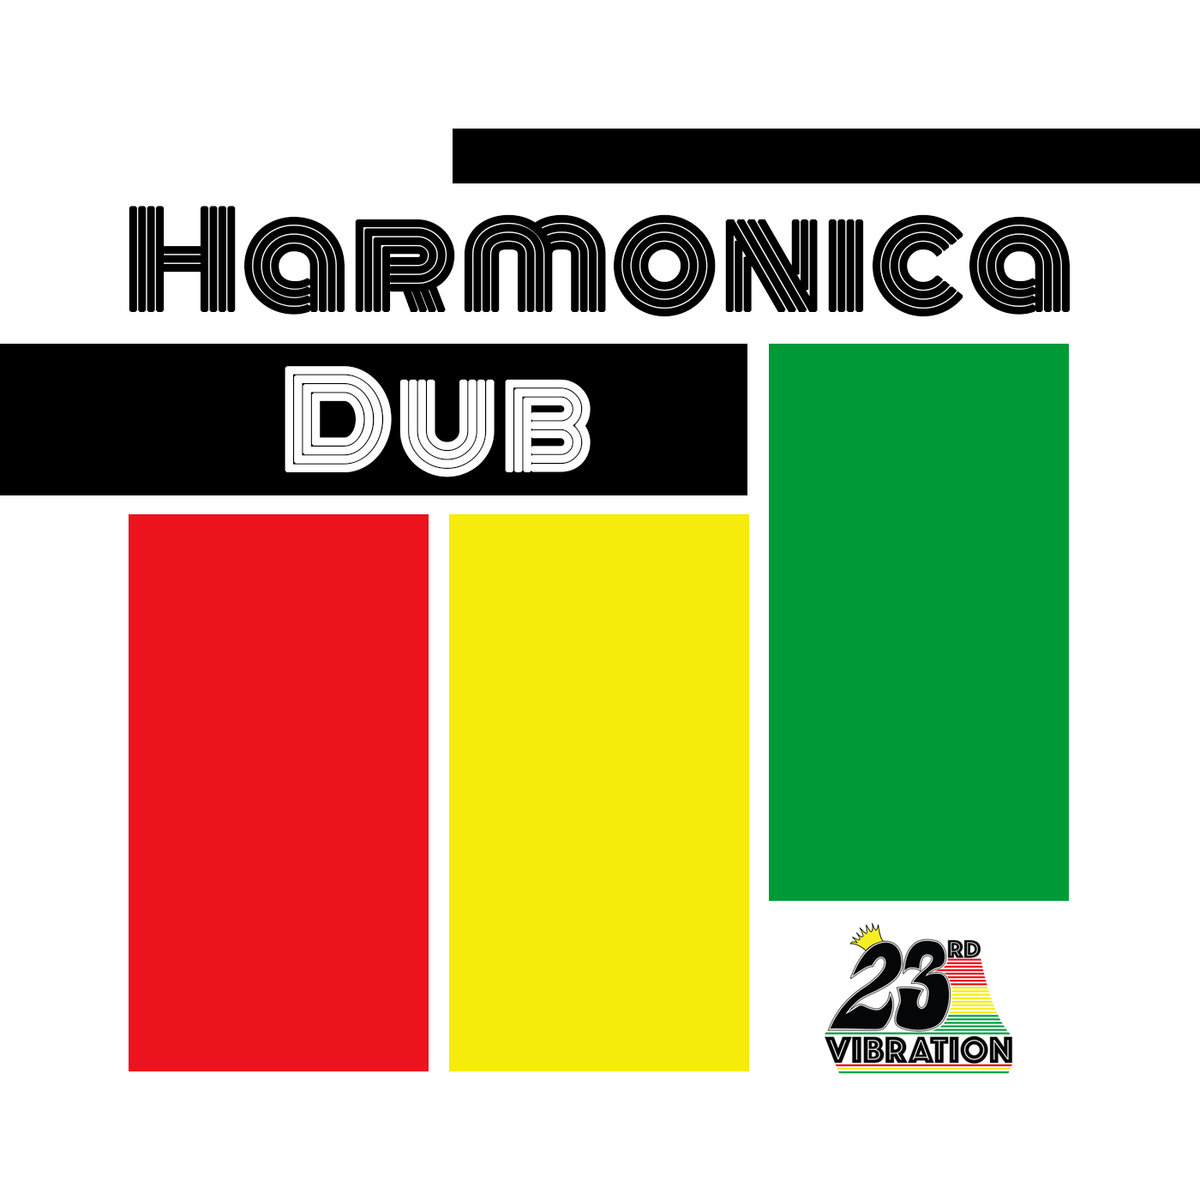 Harmonica Dub by 23rd Vibration